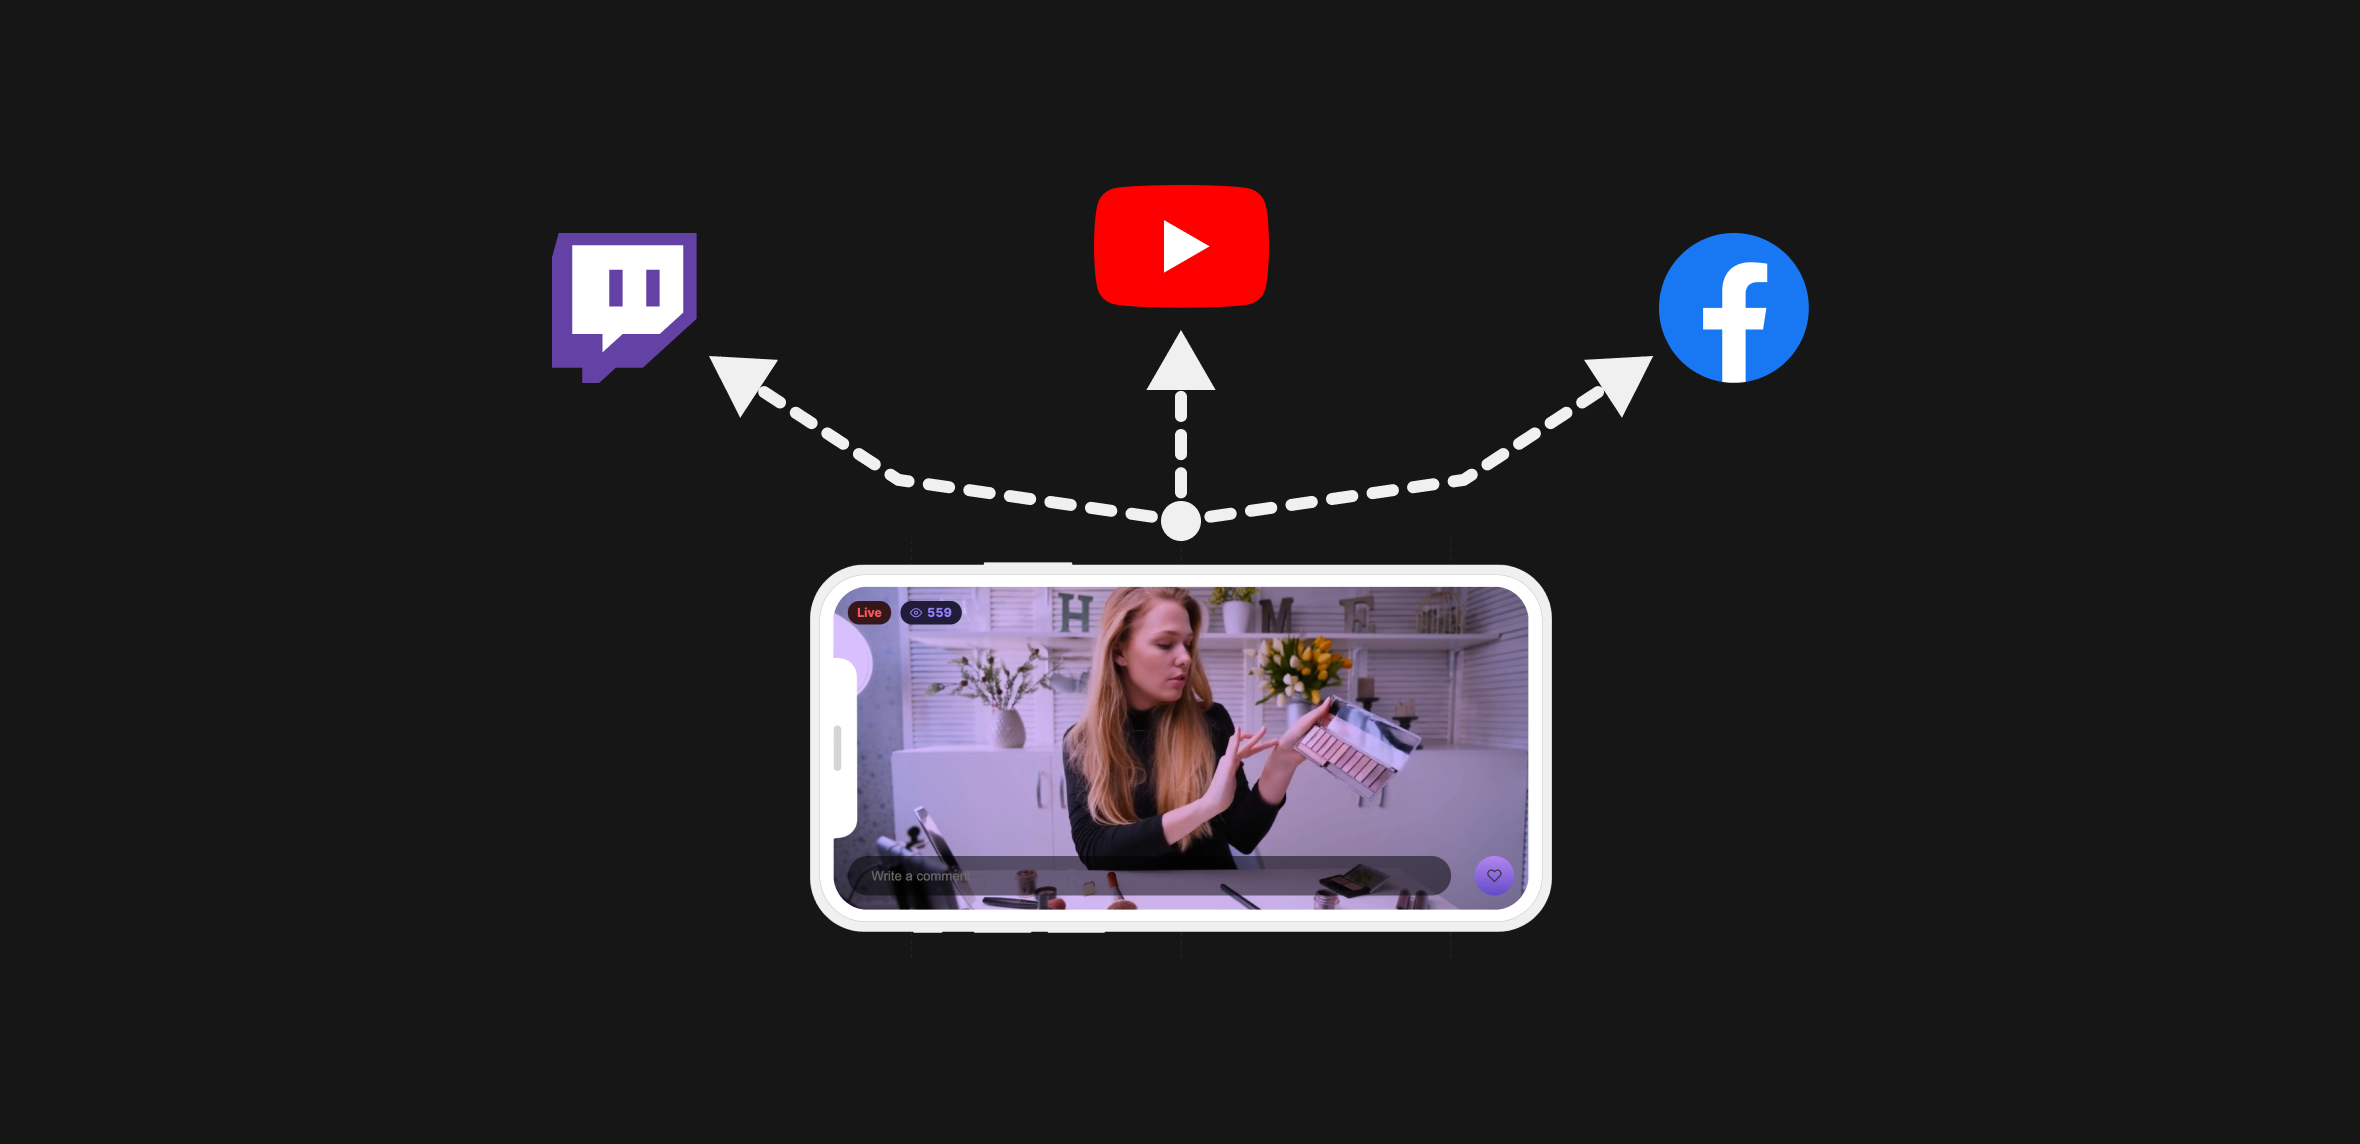 Build Multistreaming into your apps